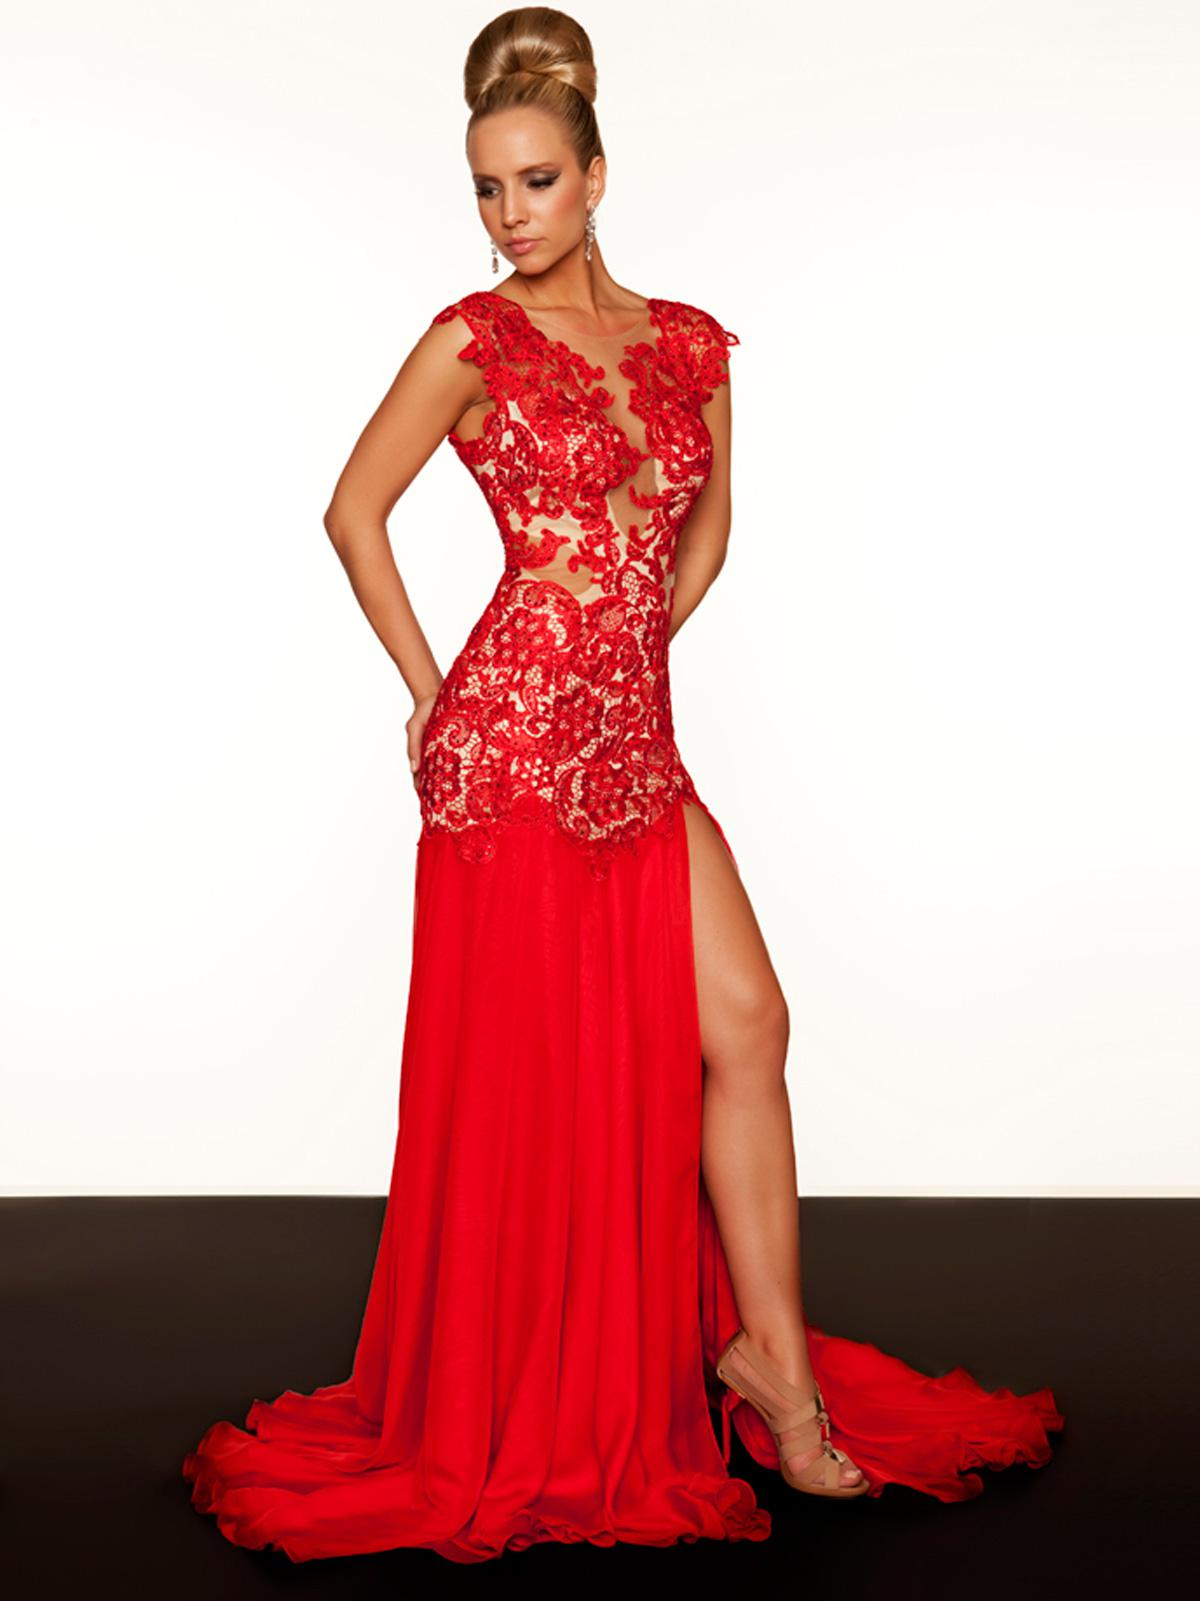 Captivating Stylish Sexy 2015 Red Lace Evening Dresses Chiffon ...